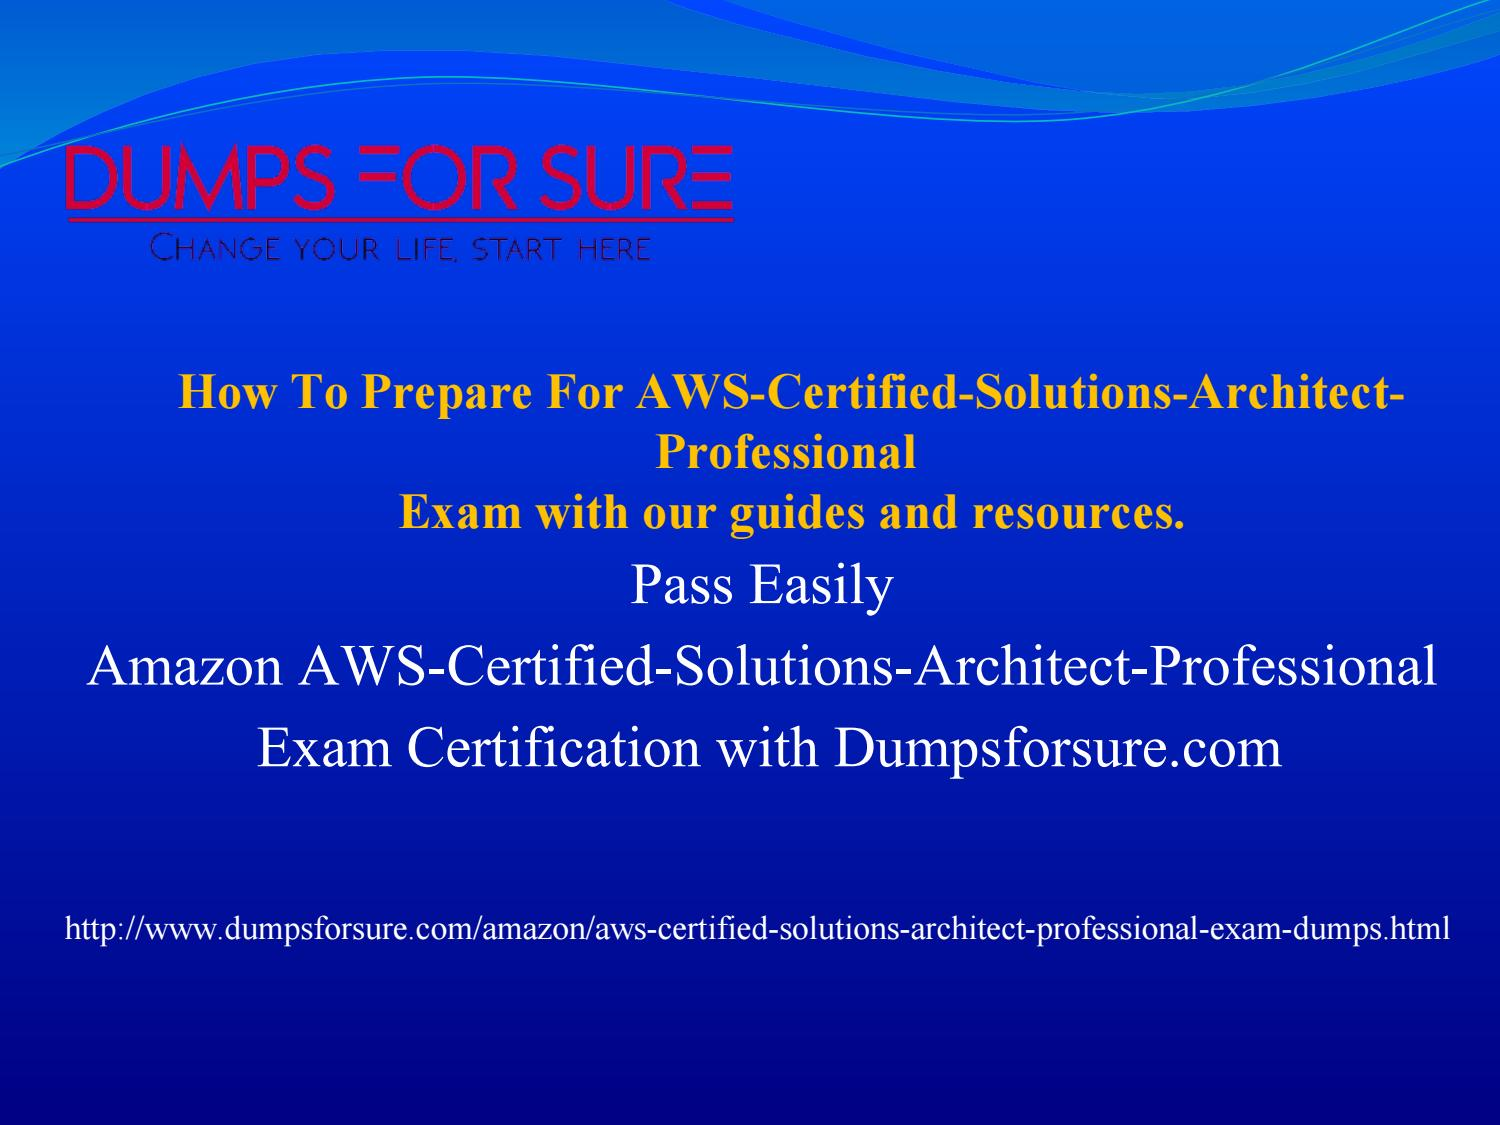 How to pass acual test with aws certified solutions architect how to pass acual test with aws certified solutions architect professional dumps verified answers by dumps forsure issuu 1betcityfo Images